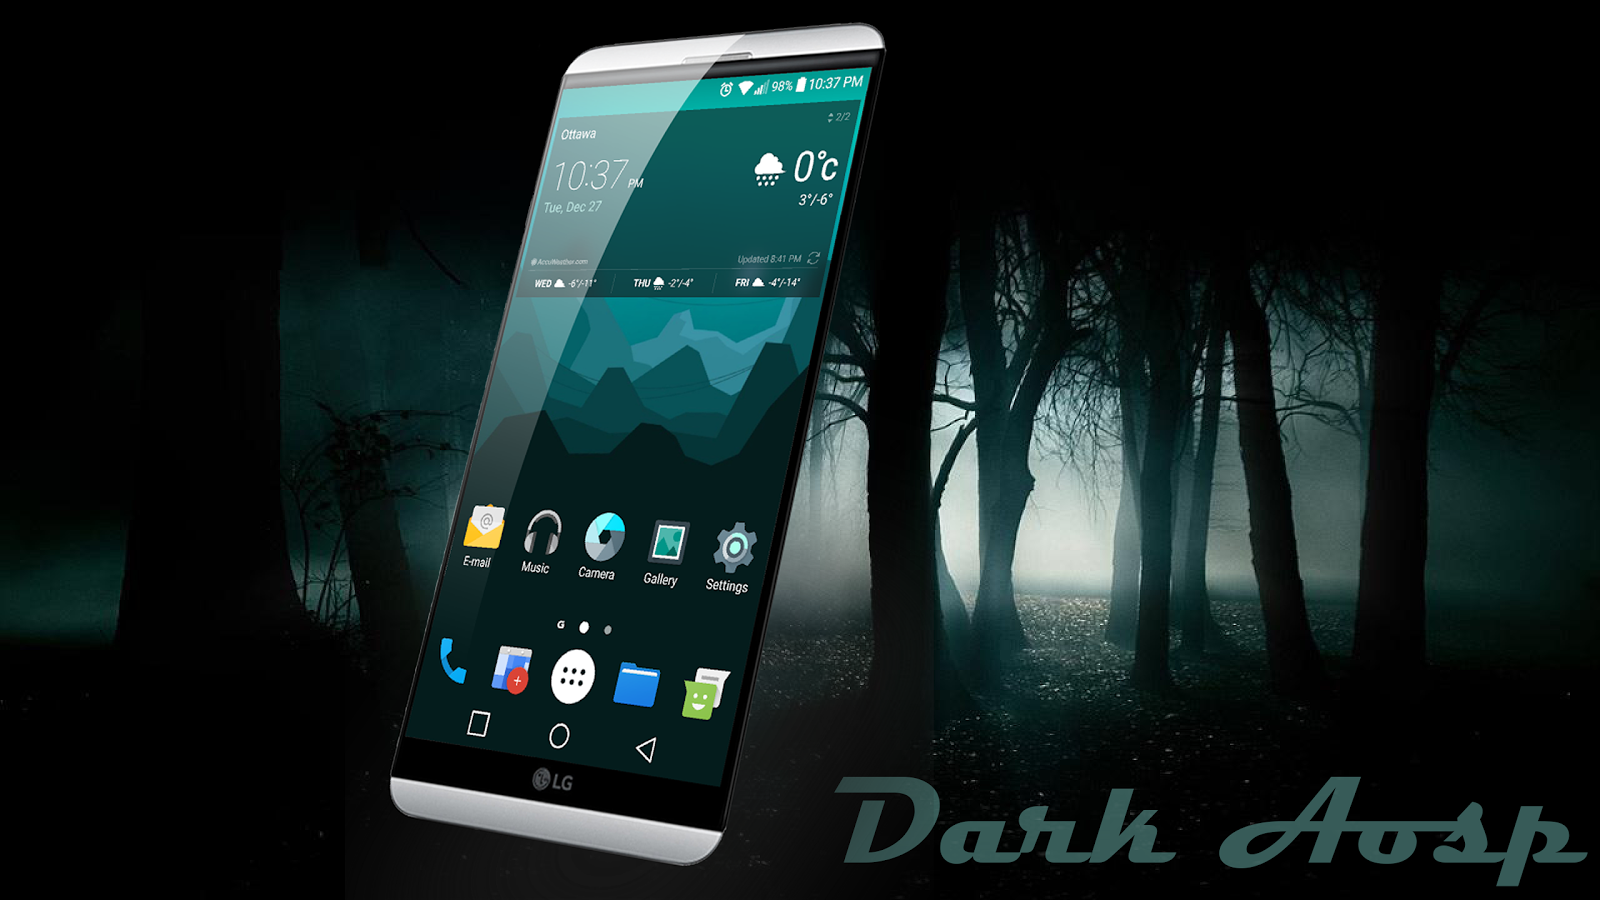 Dark Aosp Theme for LG V20 G5 1 0 2 APK Download - Android